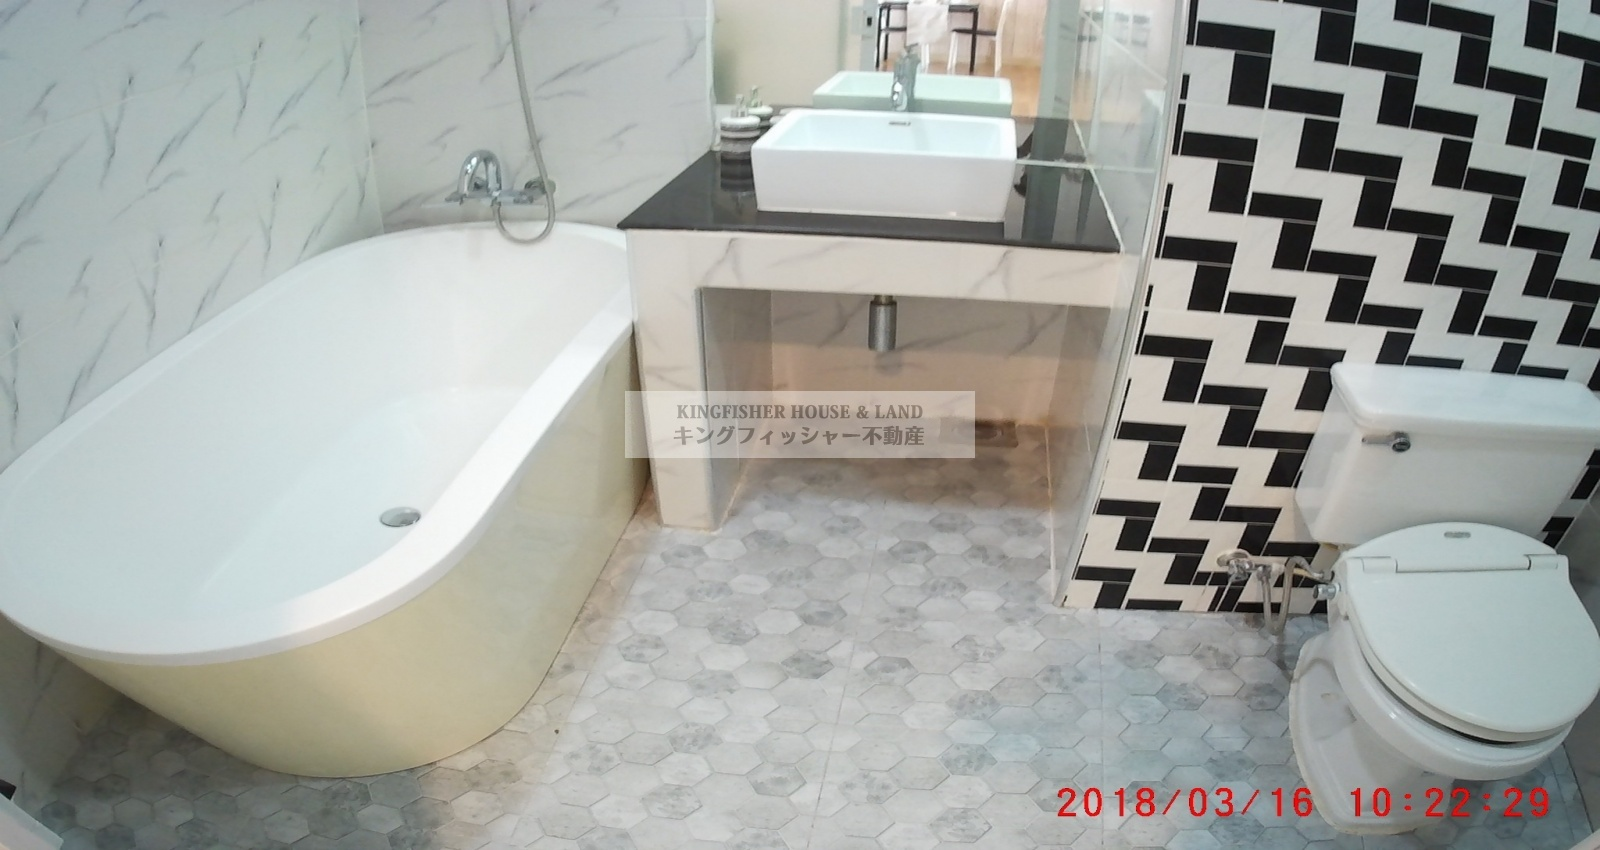 1 Bedrooms, Condominium, For Rent, 1 Bathrooms, Listing ID 1241, Sriracha, Thailand, 20110,